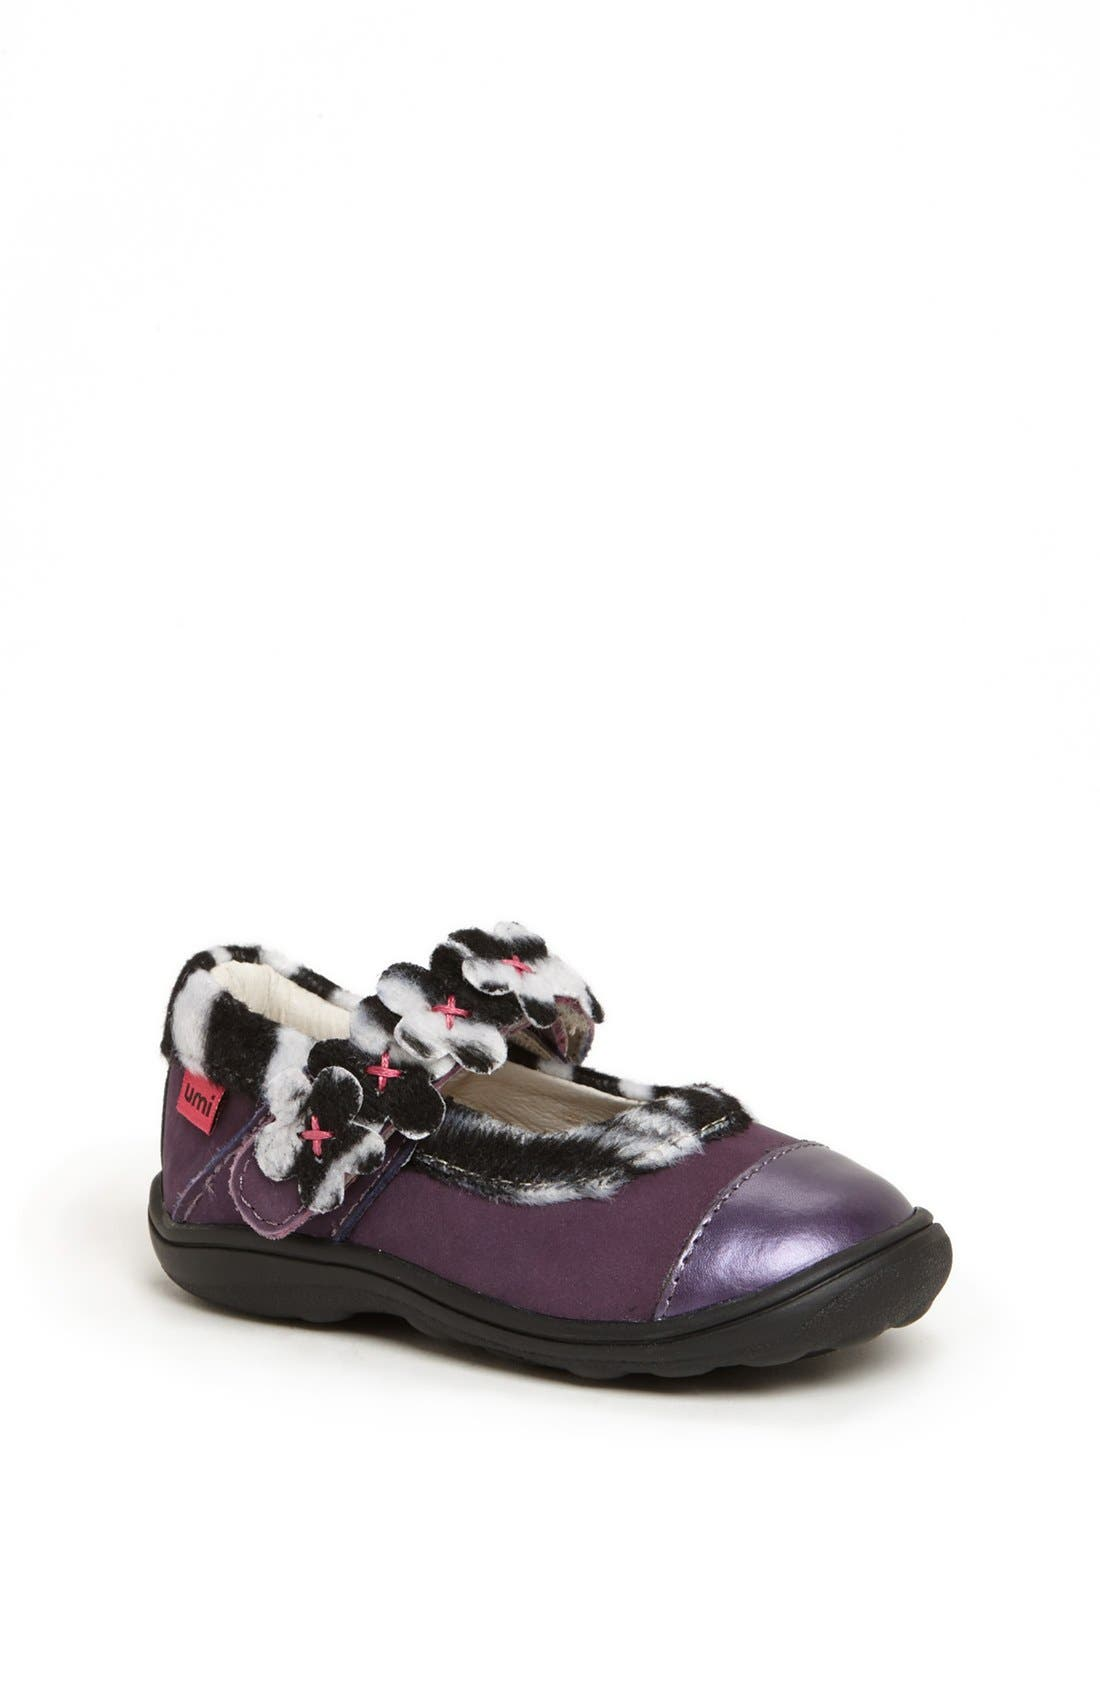 Main Image - Umi 'Marnie' Mary Jane Flat (Walker & Toddler)